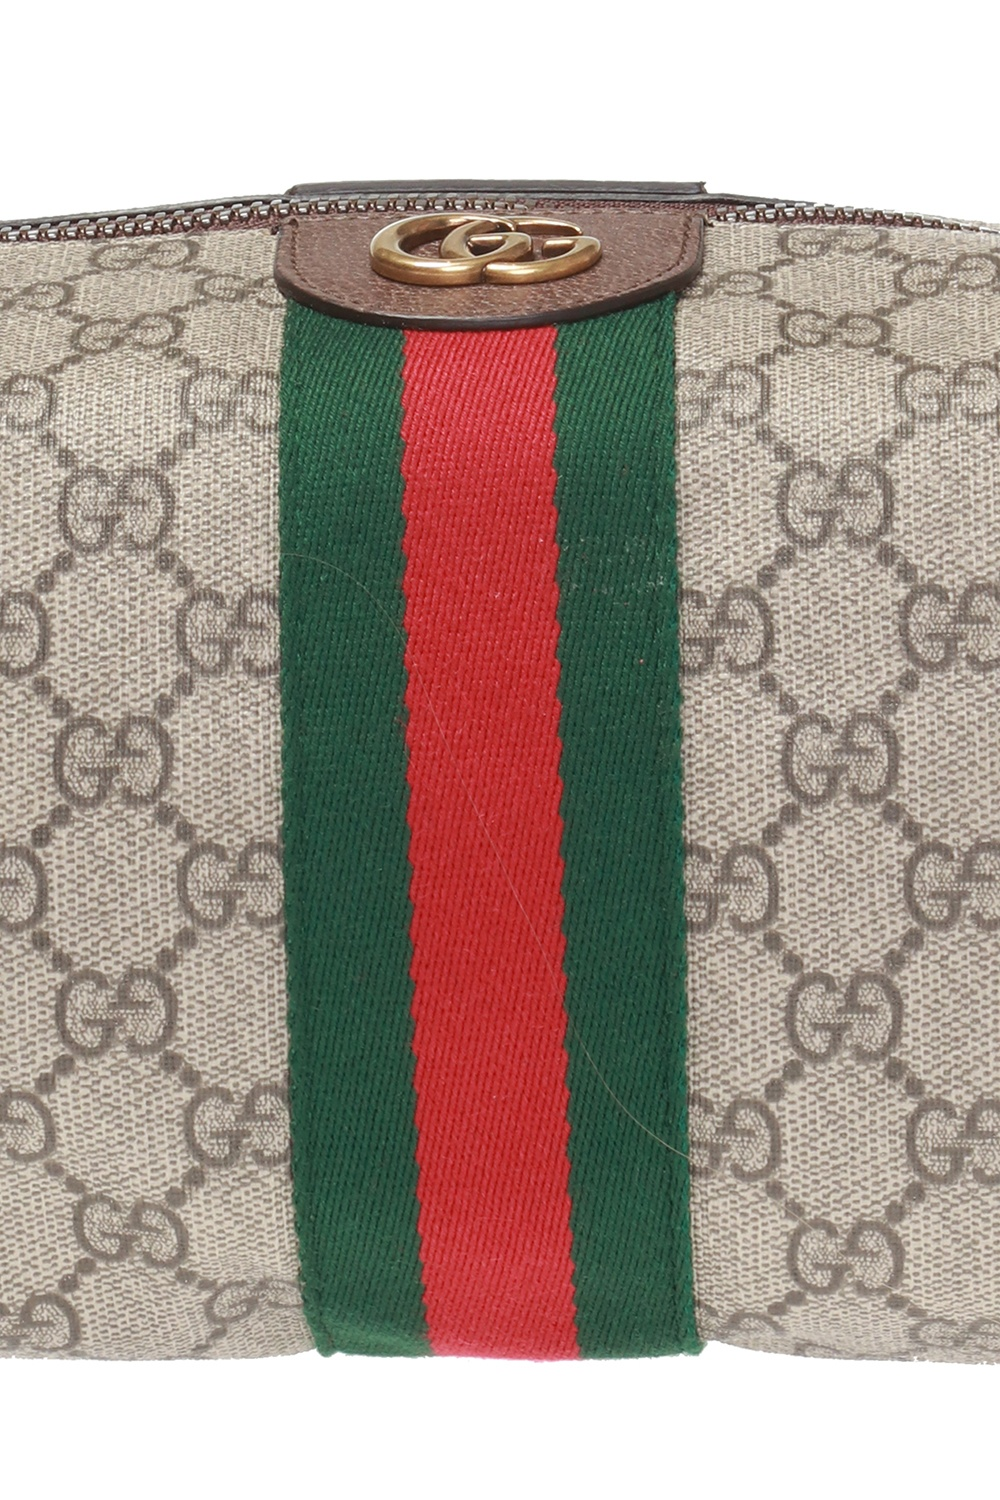 Gucci 'Ophidia' wash bag with logo